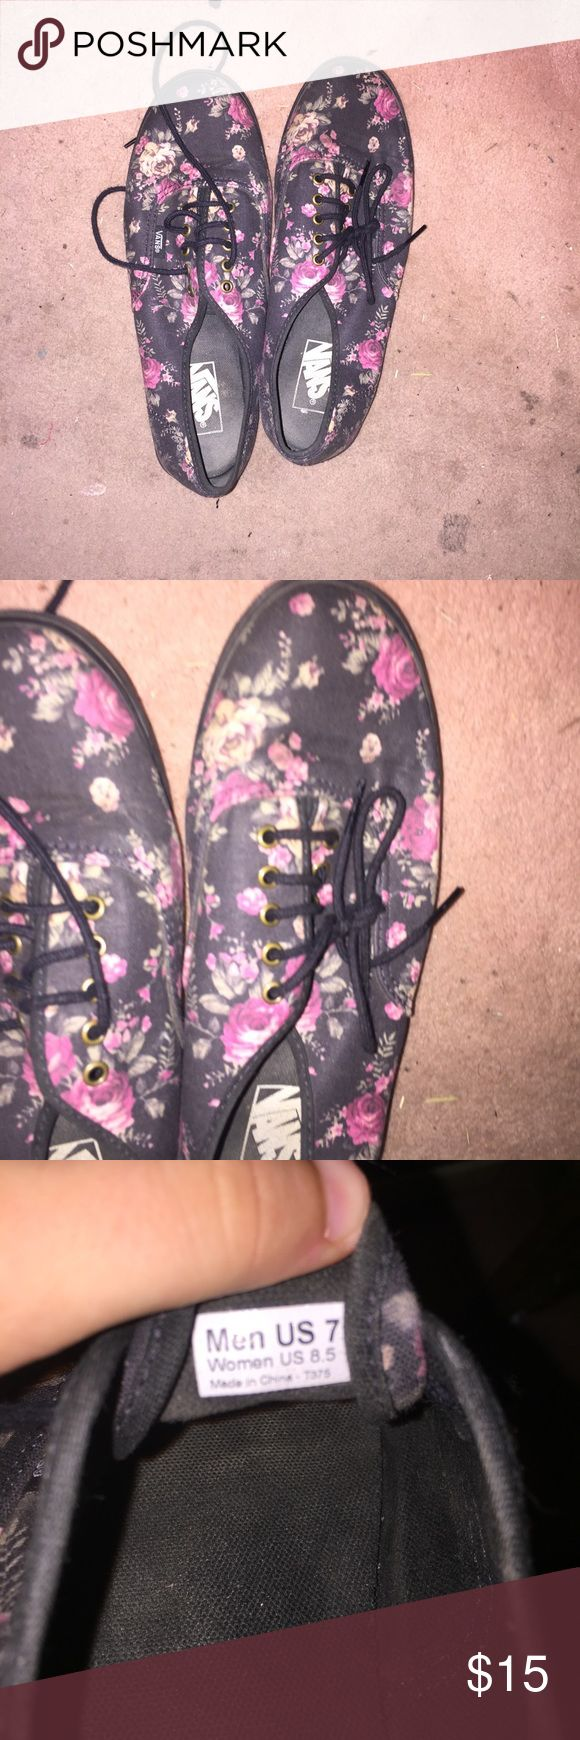 Floral vans This item is in Great condition! Vans Shoes Sneakers